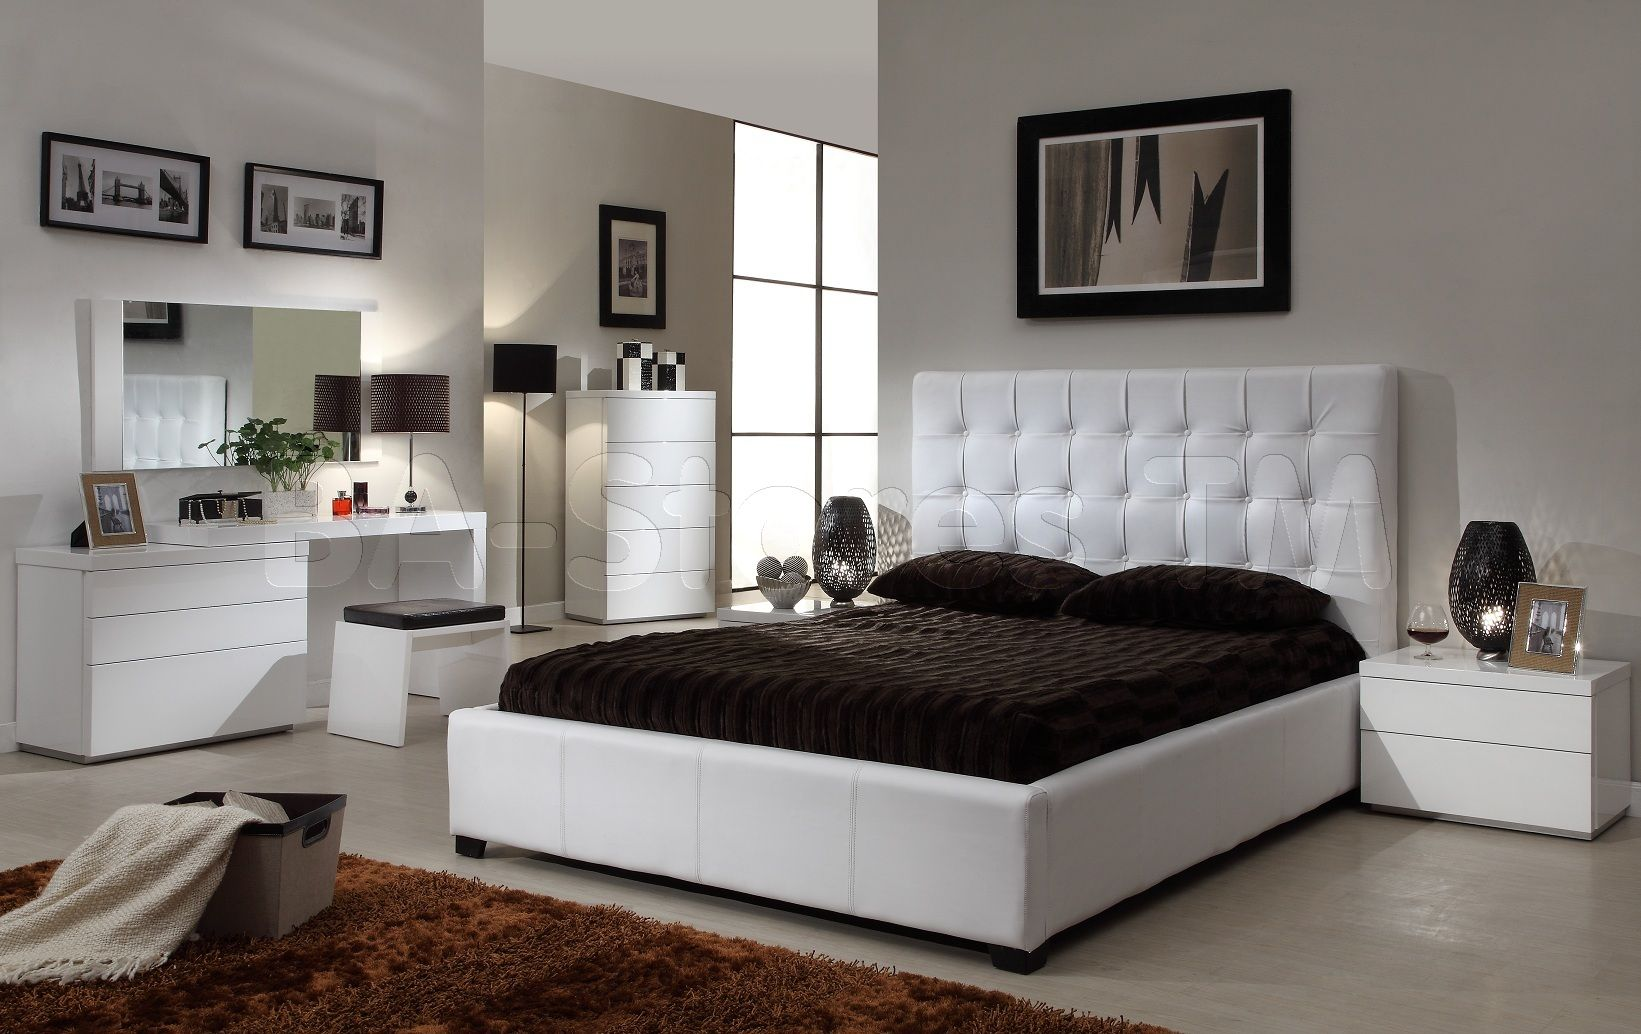 Athens 5 PC White Bedroom Set (Bed, Nightstand, Dresser, Wall ...